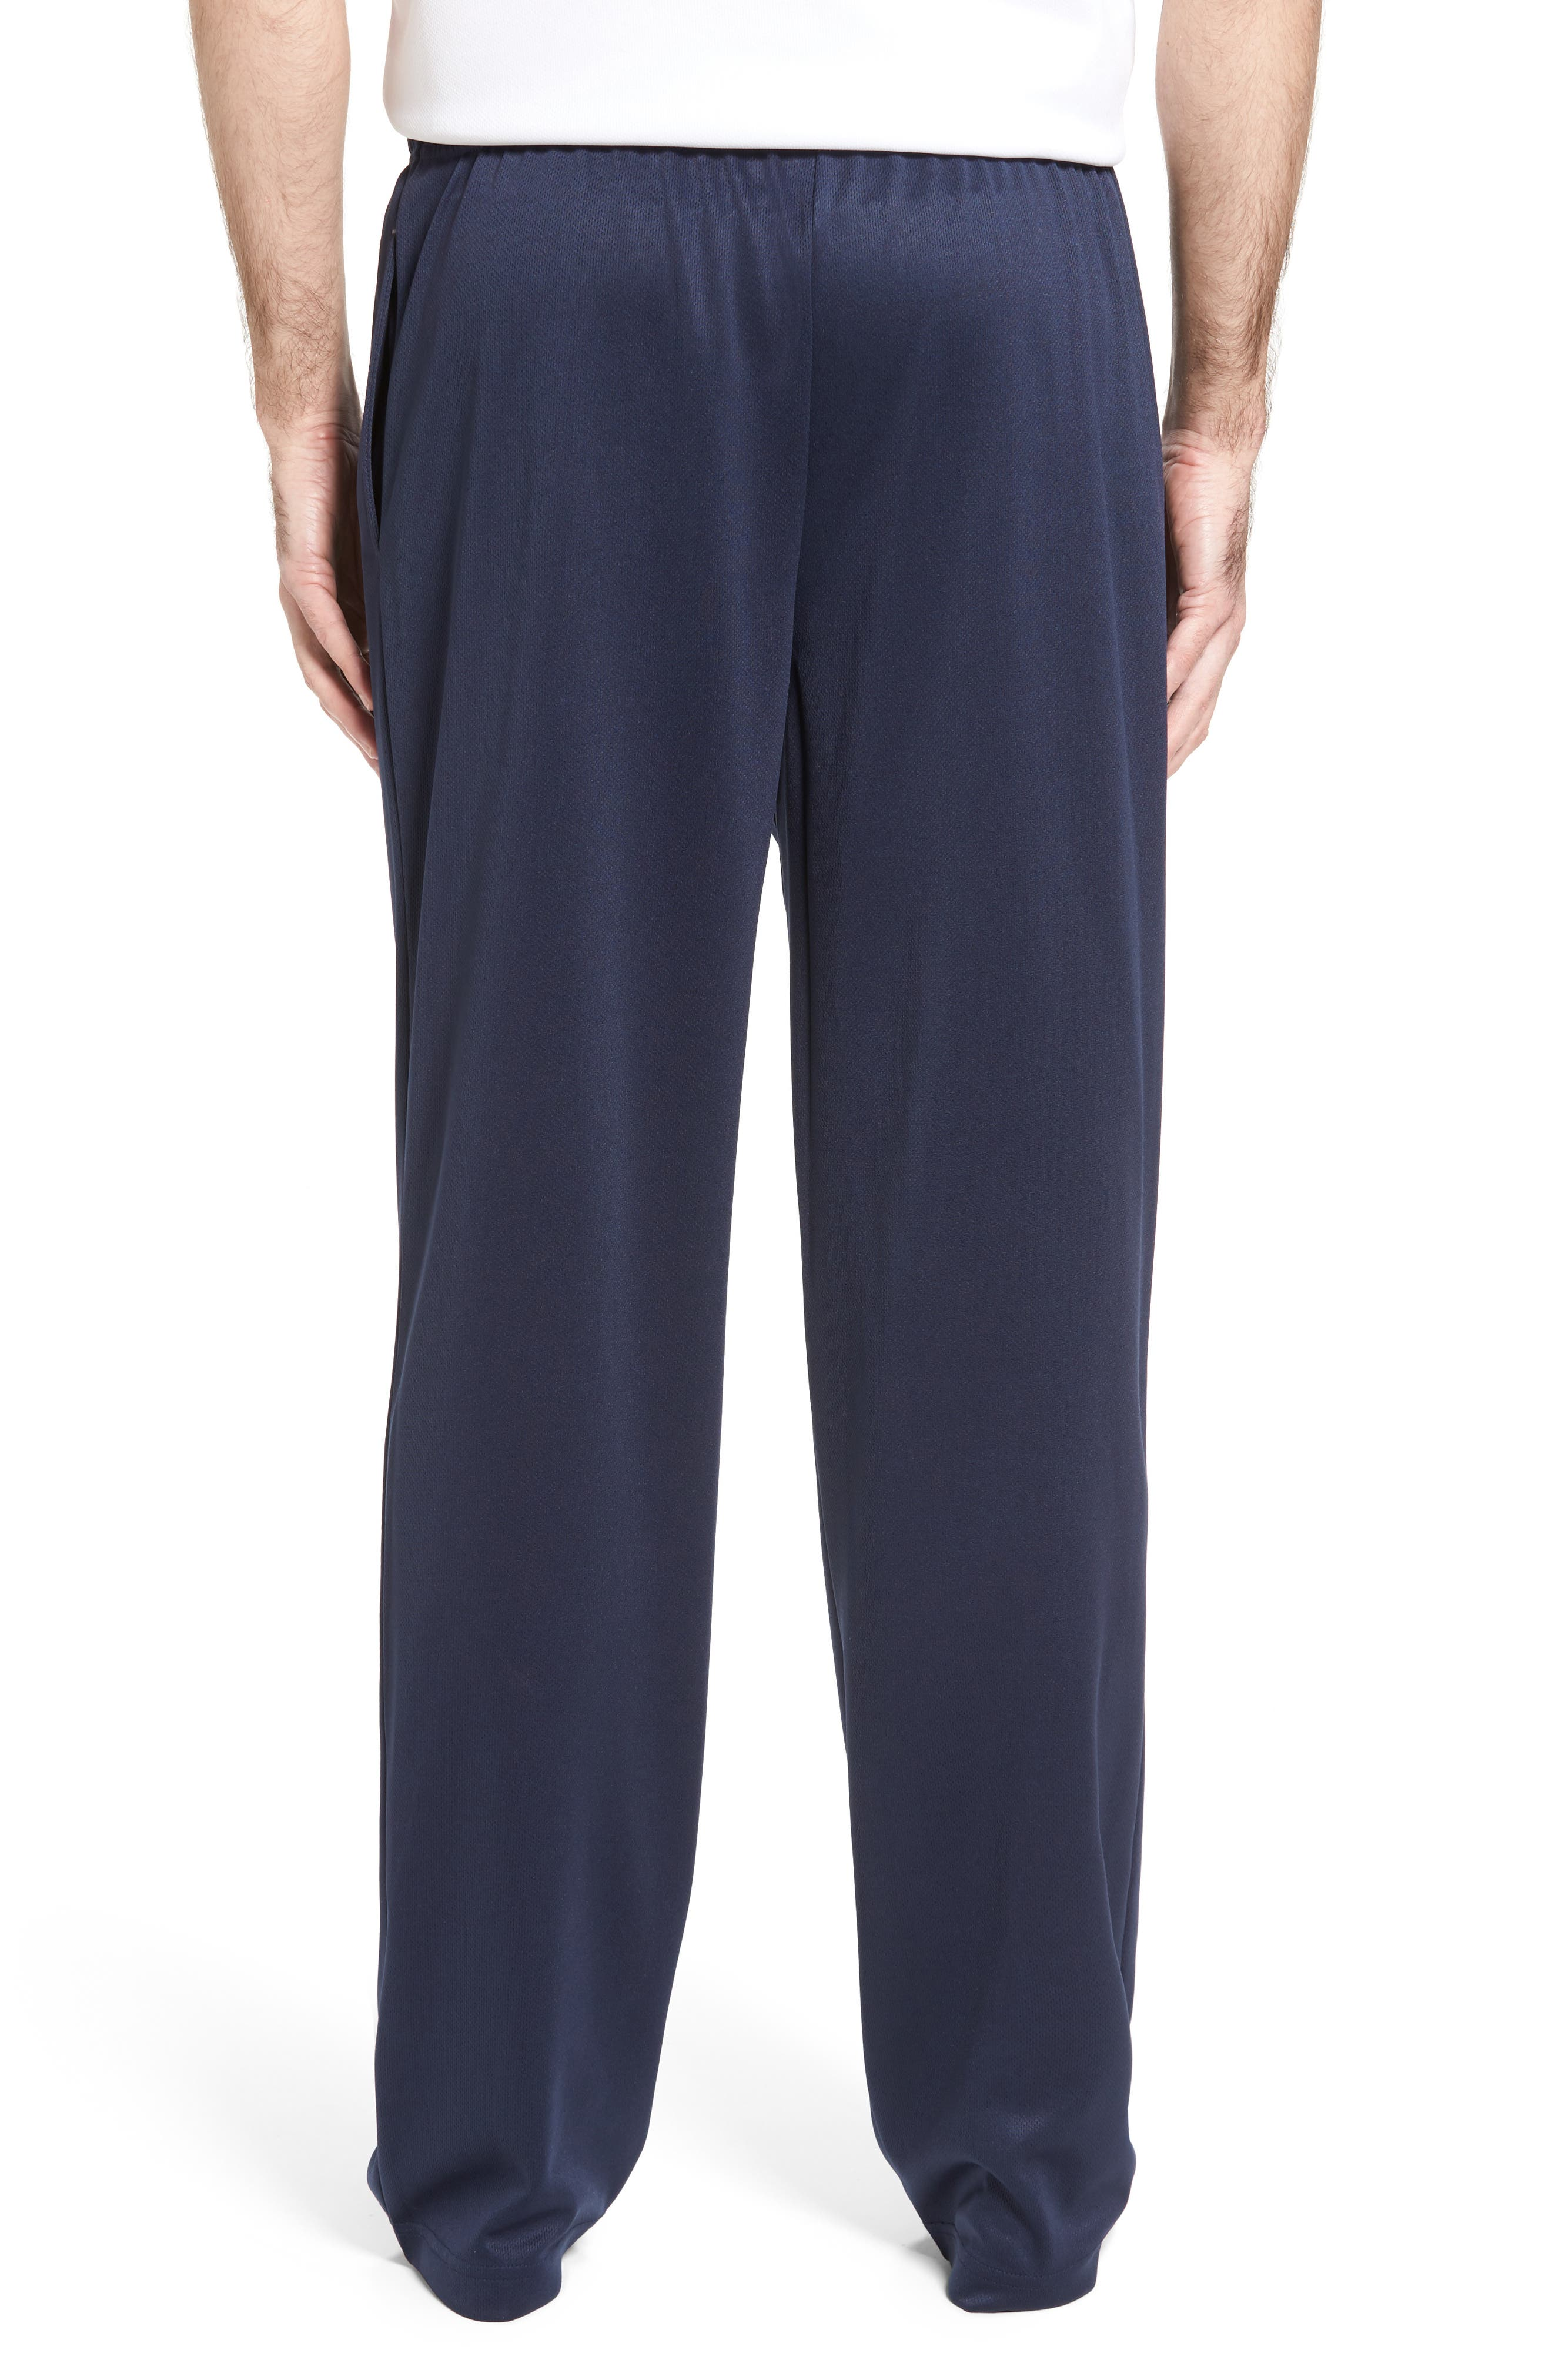 Work Out Lounge Pants,                             Alternate thumbnail 6, color,